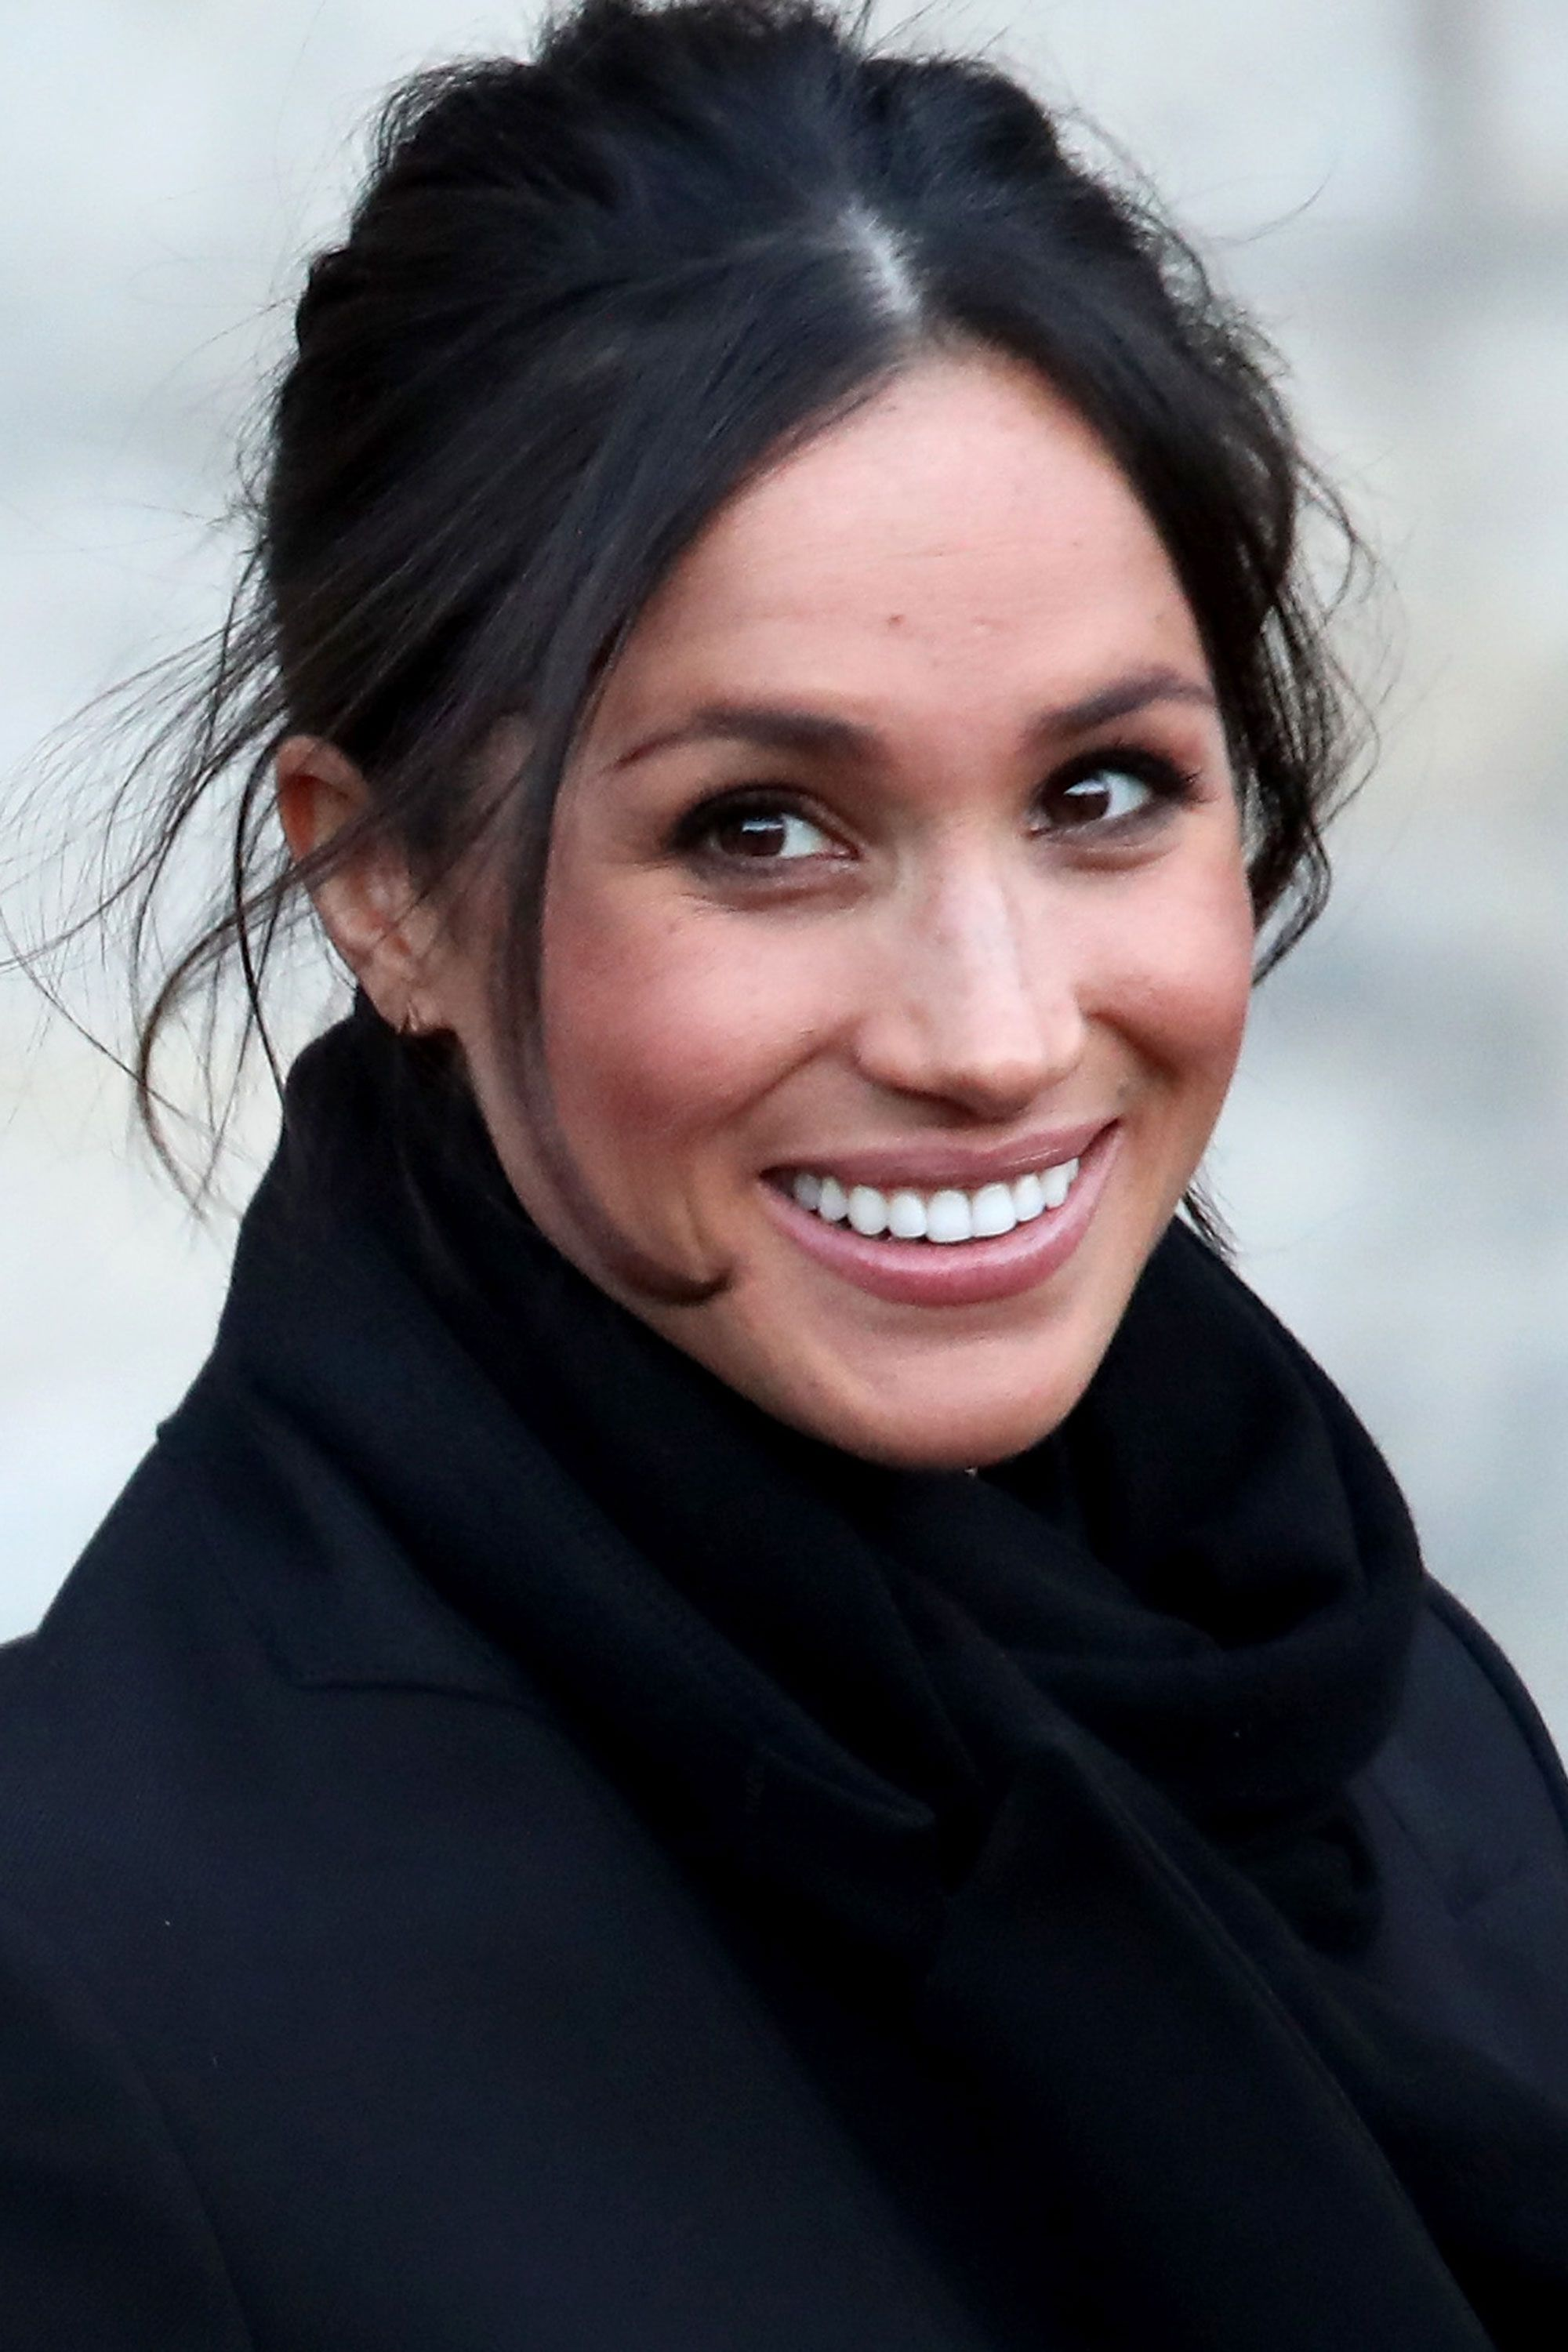 Meghan Markle -Duchess of Sussex